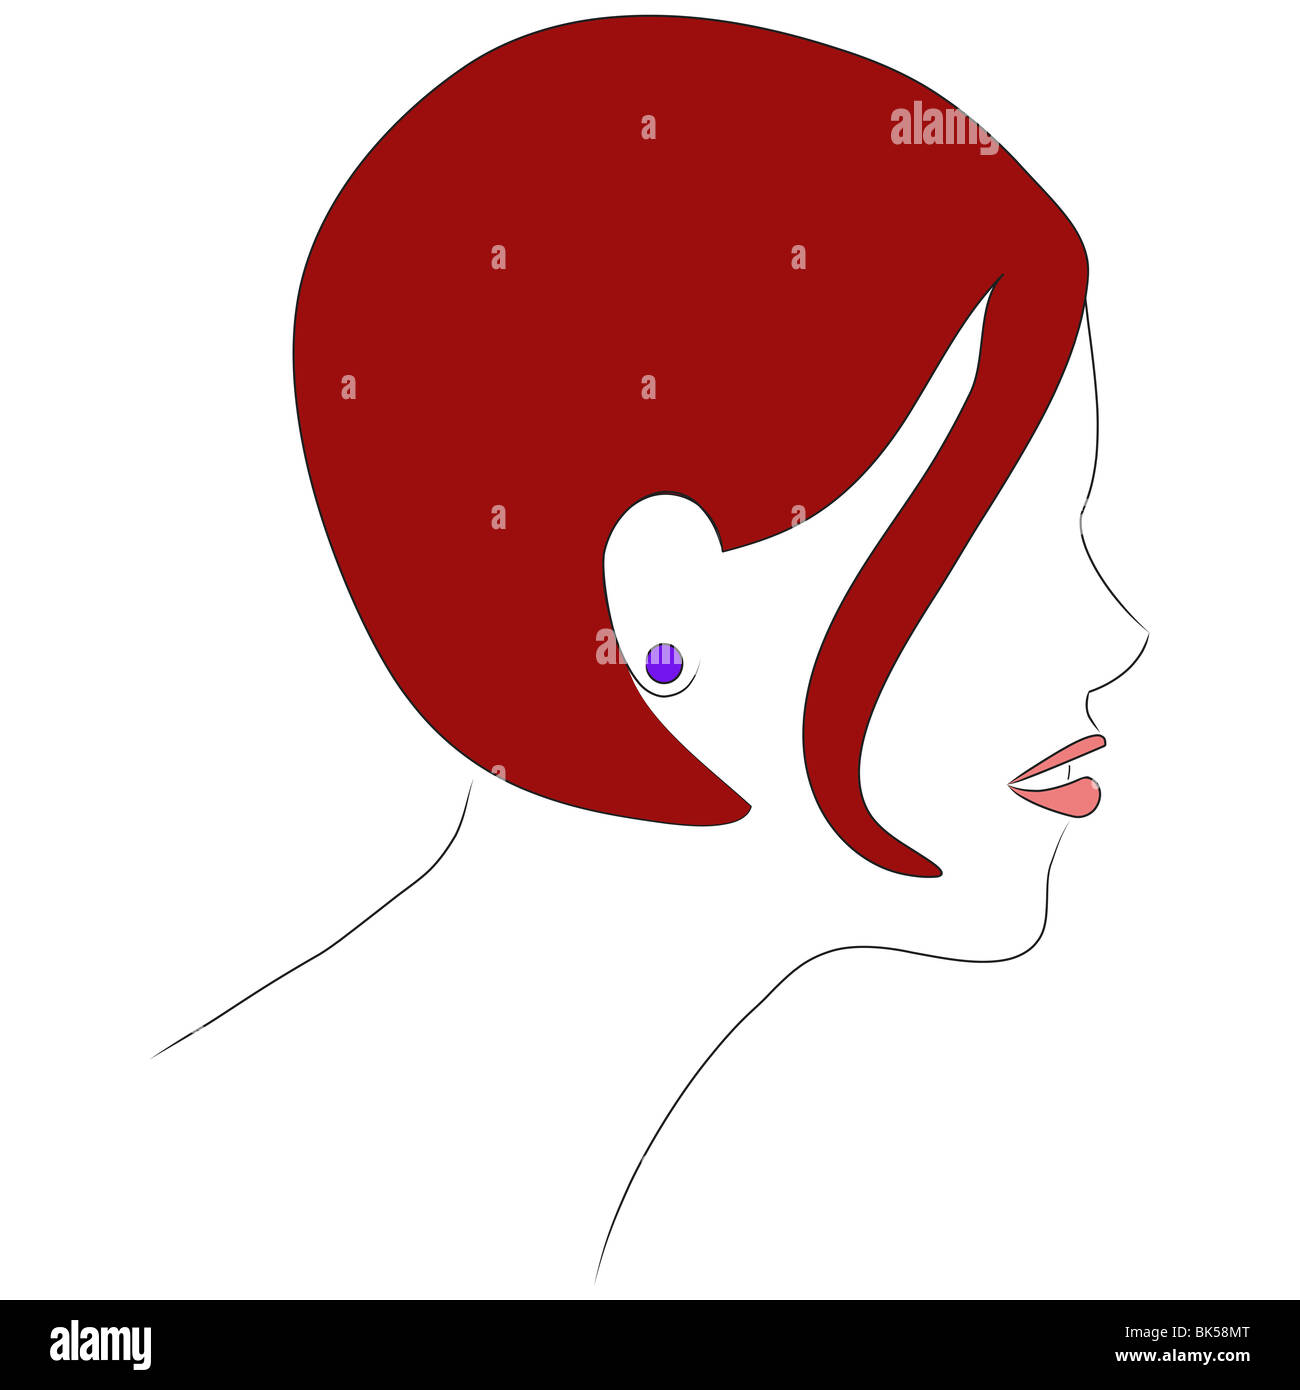 A profile illustration of a girl with short red hair. It done in the style of a 1060s magazine illustration. - Stock Image